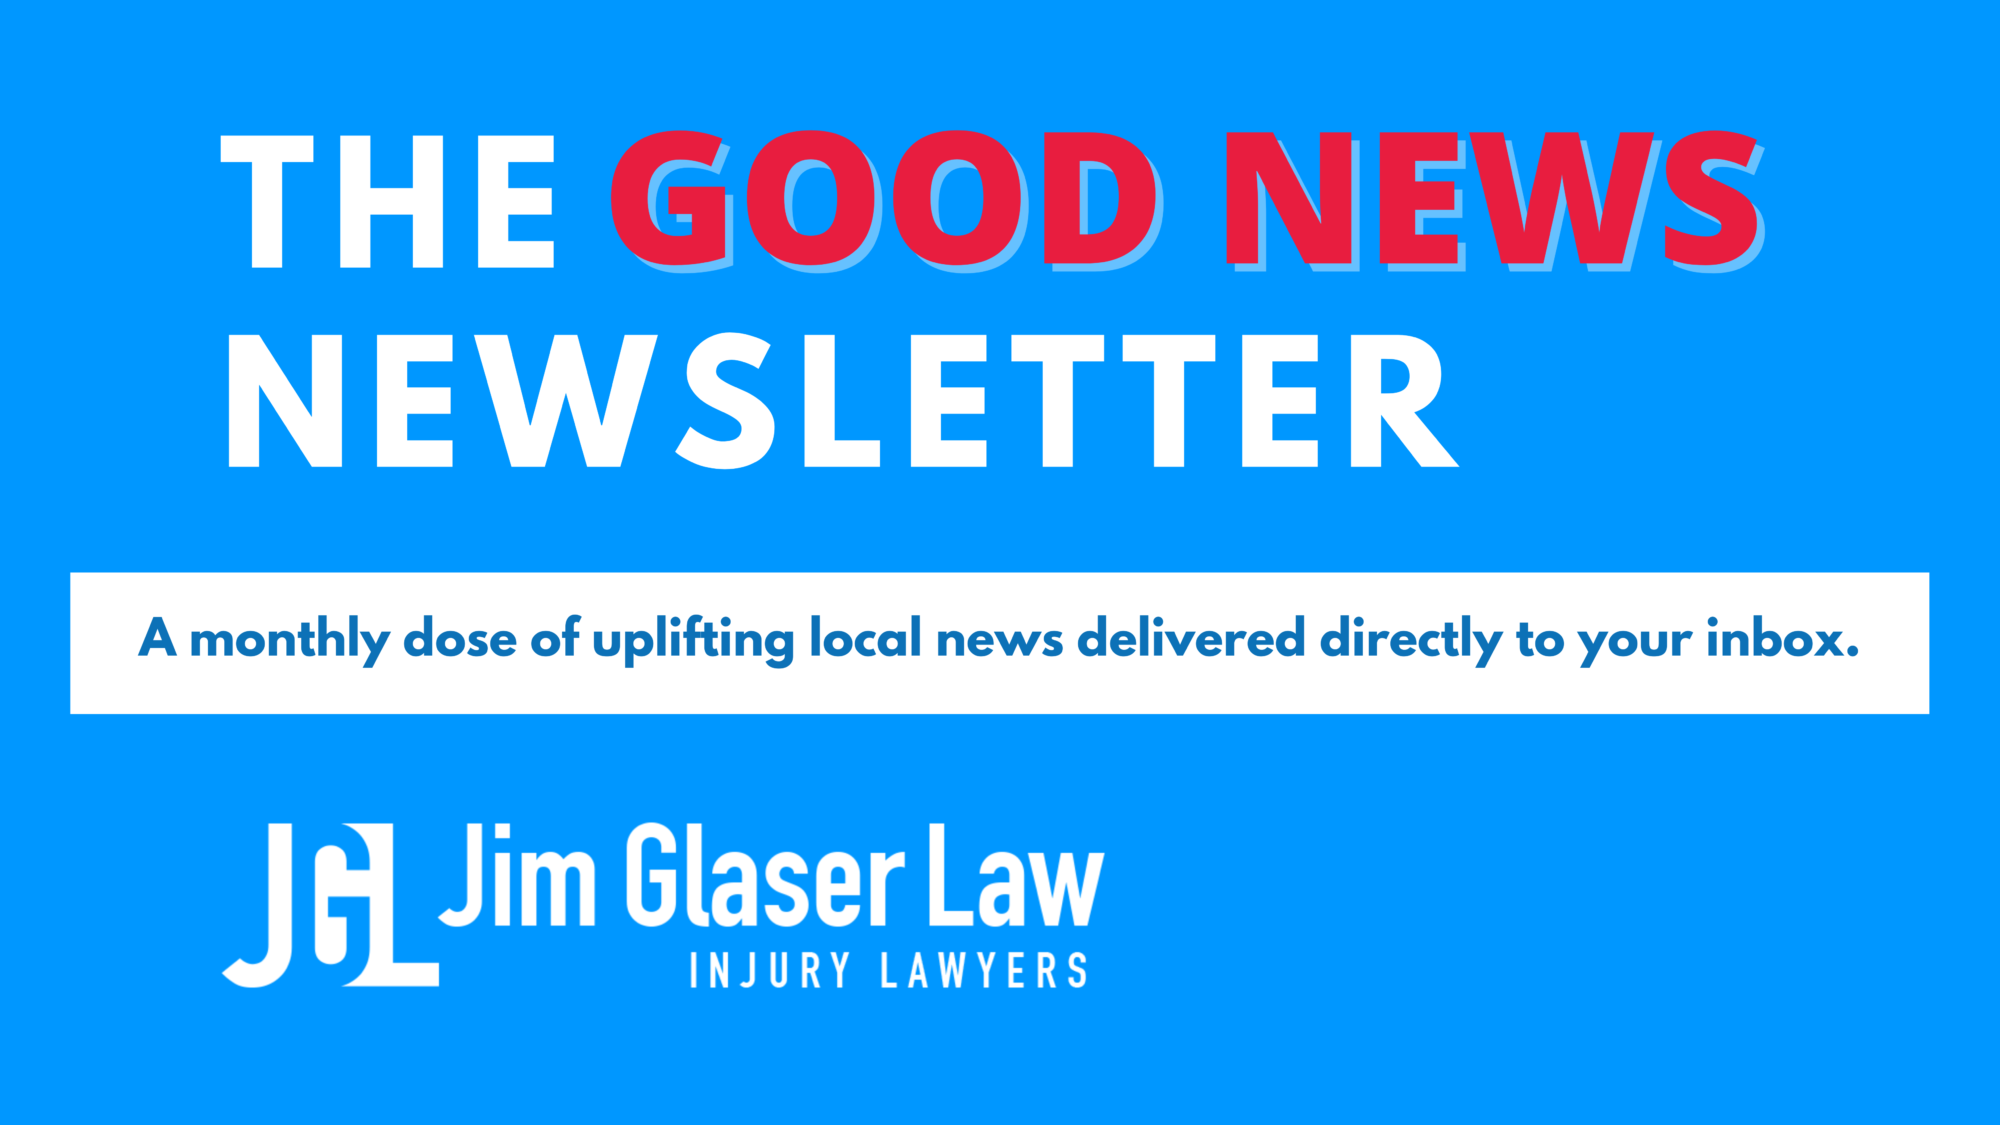 The Good News Newsletter